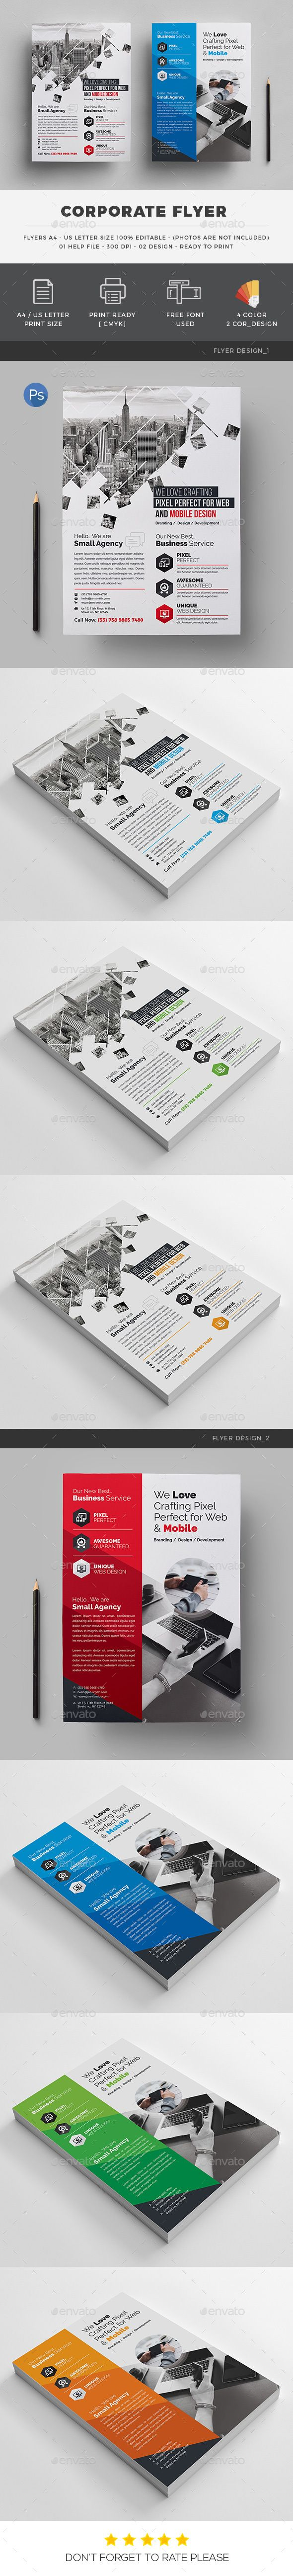 Corporate Flyer — Photoshop PSD #official flyer #web flyer • Available here → https://graphicriver.net/item/corporate-flyer/19932088?ref=pxcr